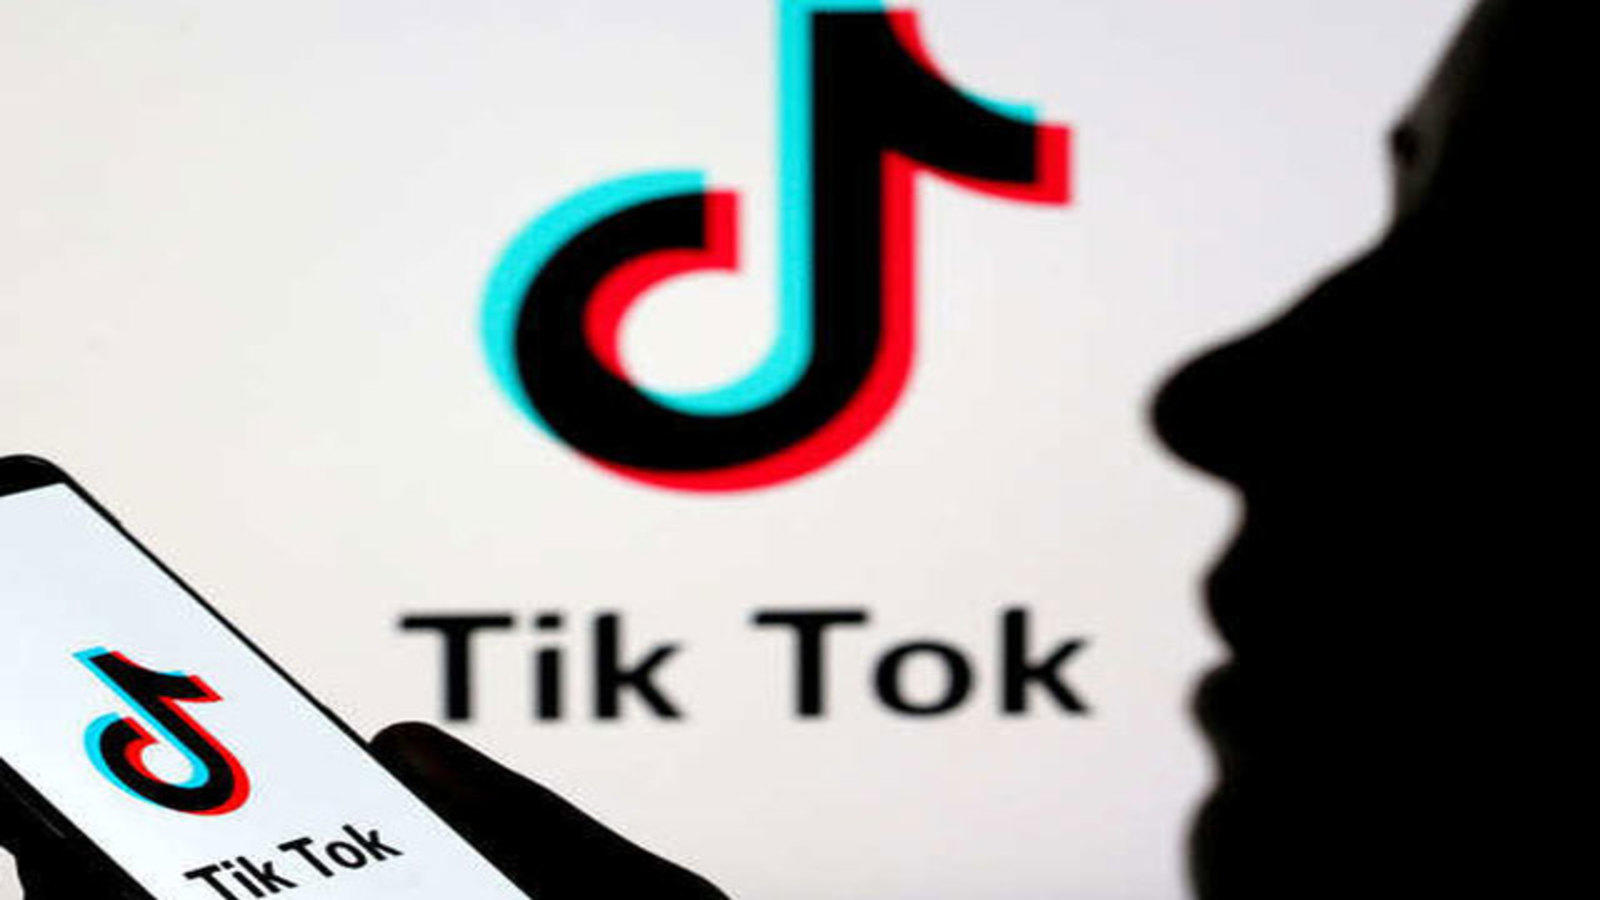 How to increase engagement for TikTok videos